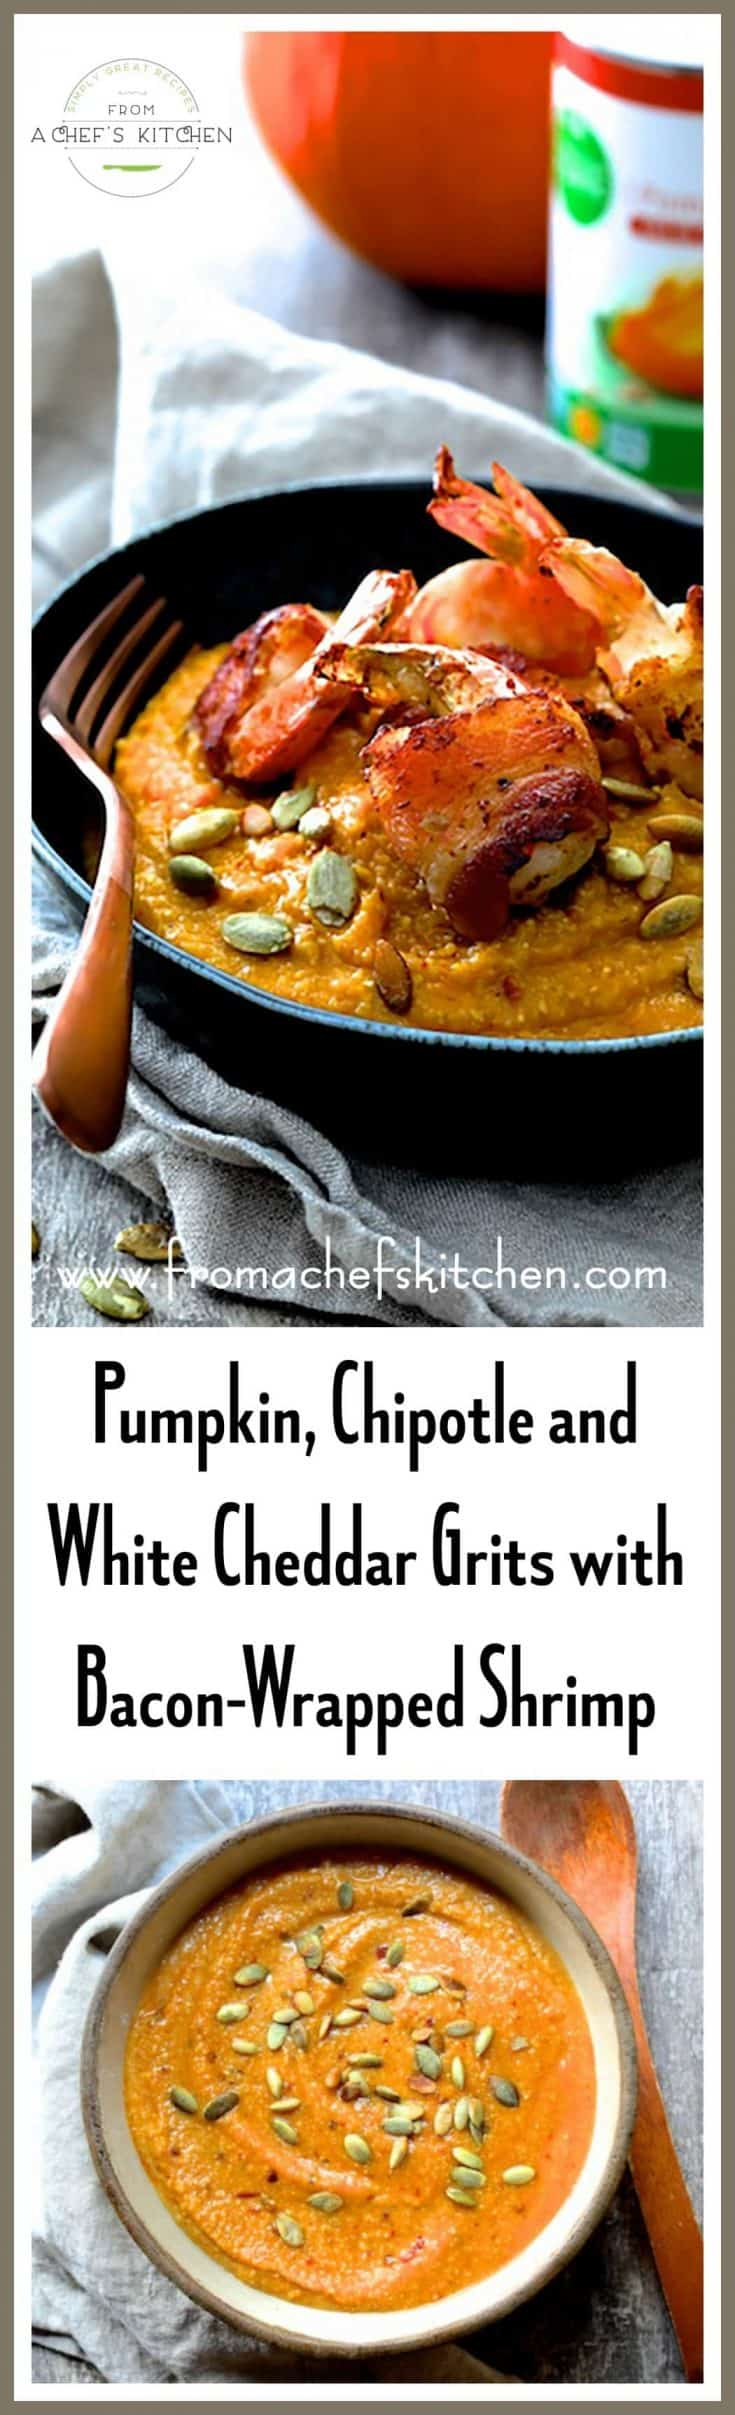 Pumpkin, Chipotle and White Cheddar Grits with Bacon-Wrapped Shrimp is the perfect autumn treat for an easy dinner or for entertaining guests!  #KrogerFoodie #sponsored #ad